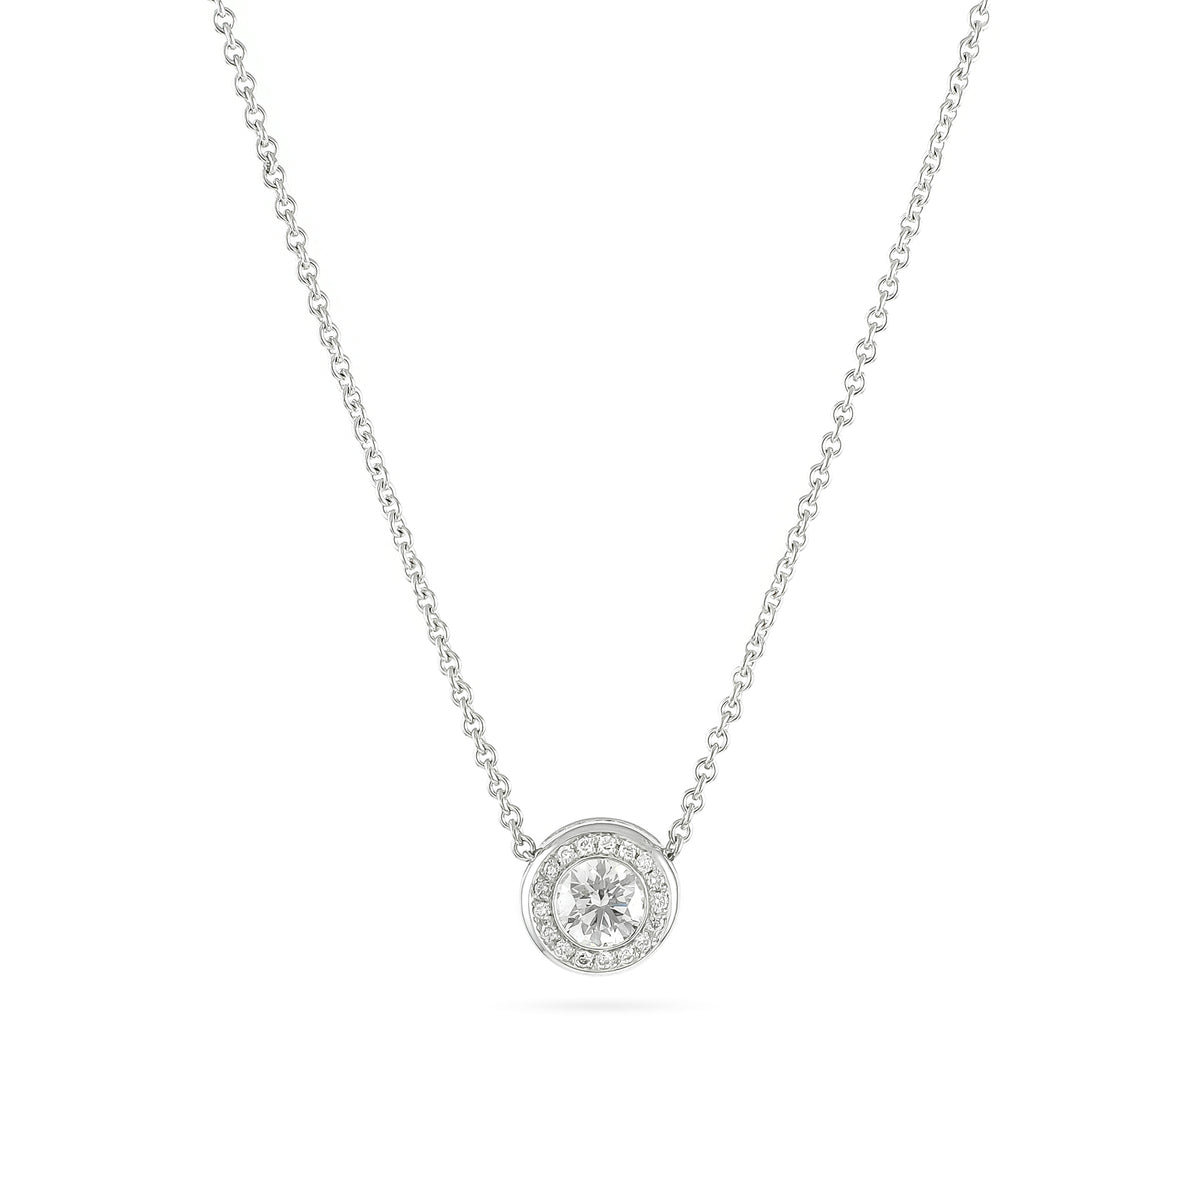 Vintage 18ct White Gold 0.75ct Diamond Necklace